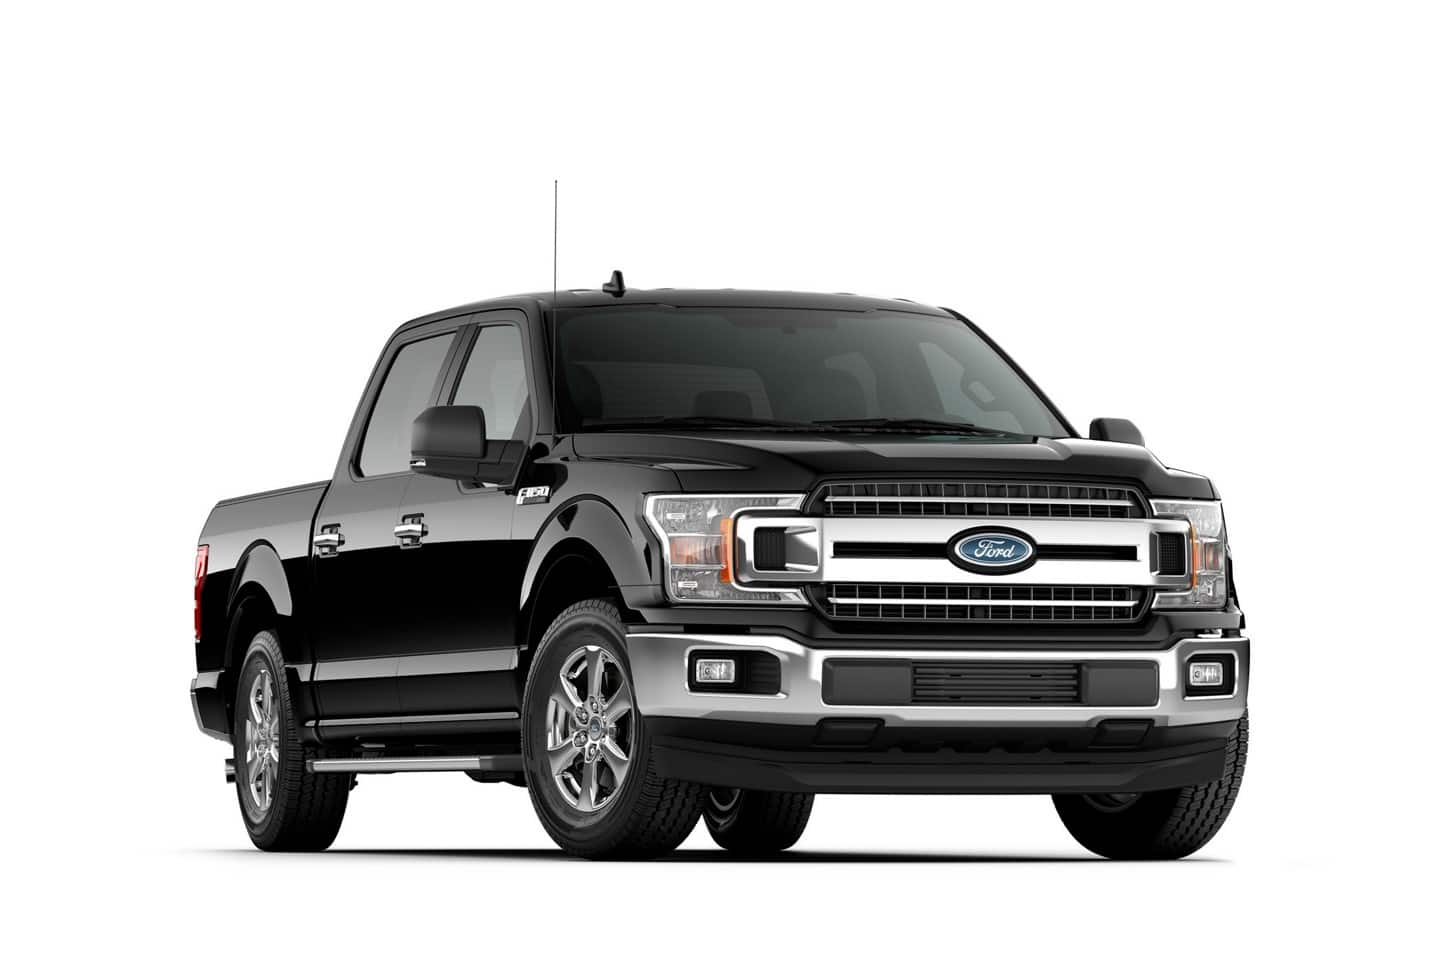 70 All New 2019 Ford 150 Price And Release Date